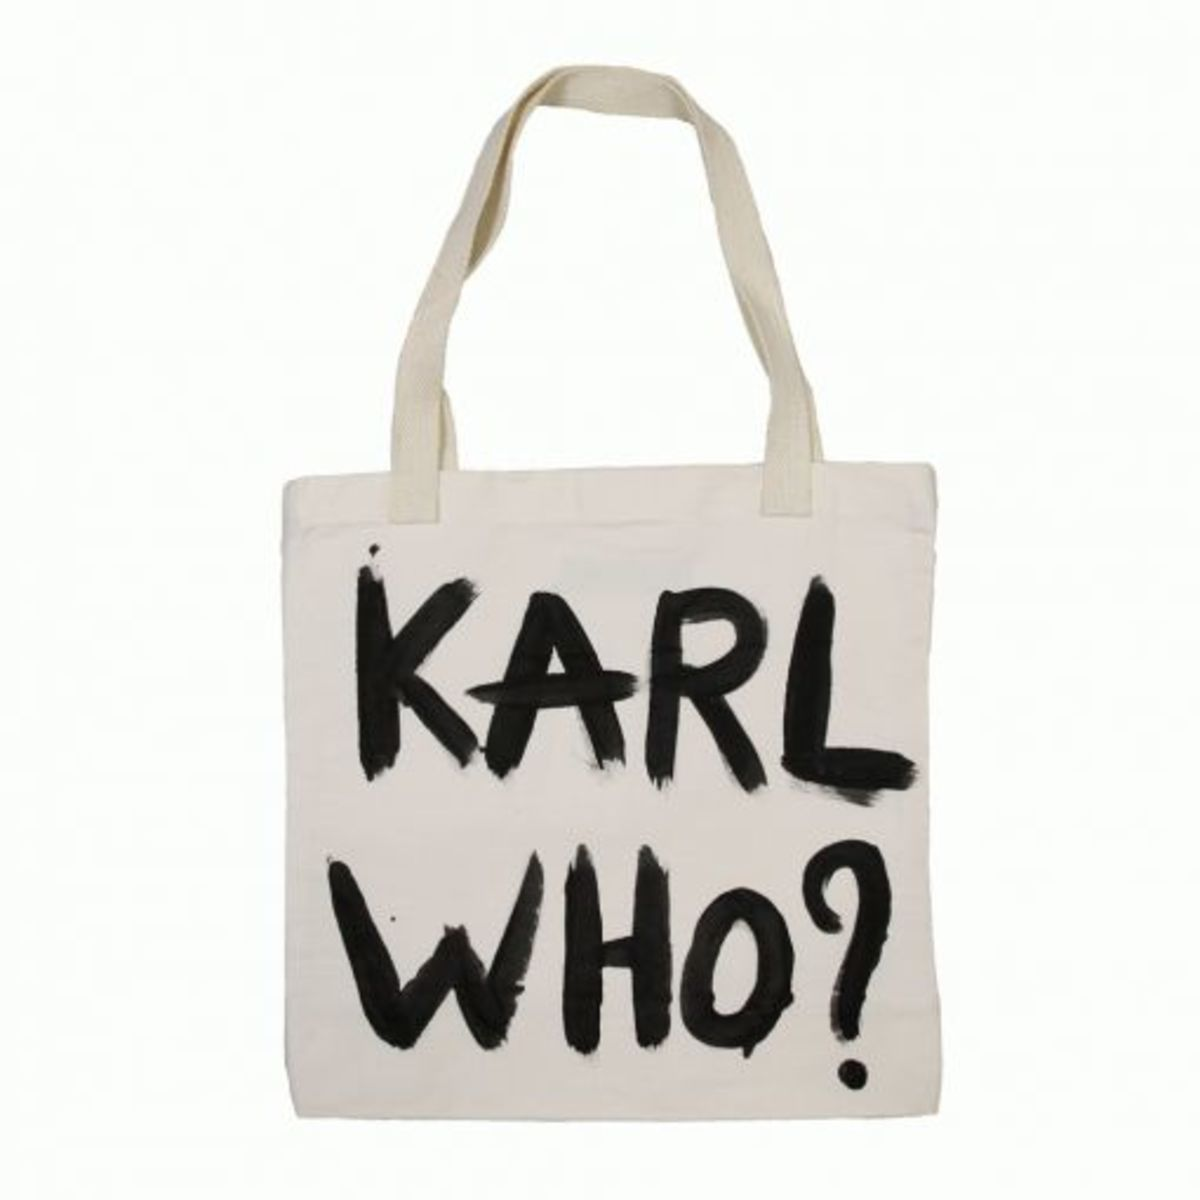 naco_karl_who_1